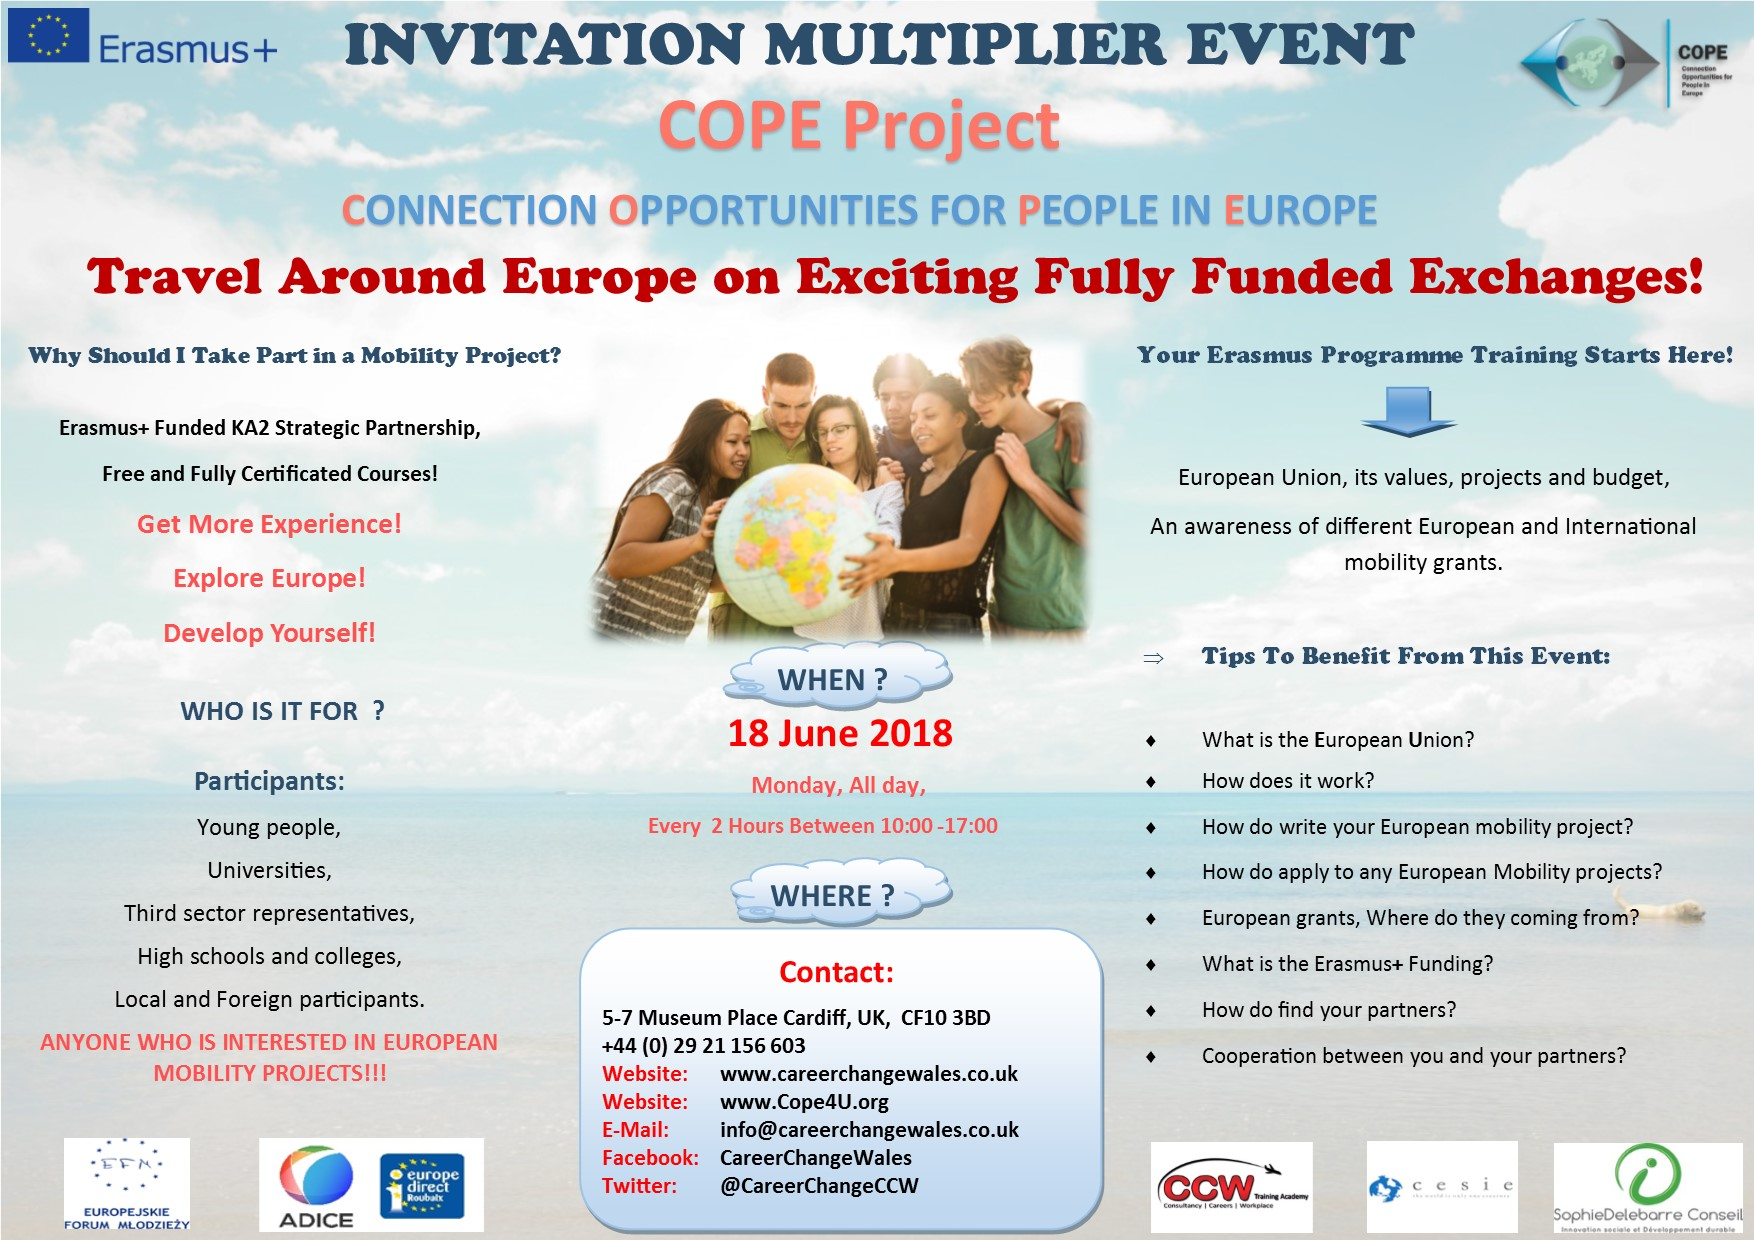 COPE Erasmus Project Multiplier Event